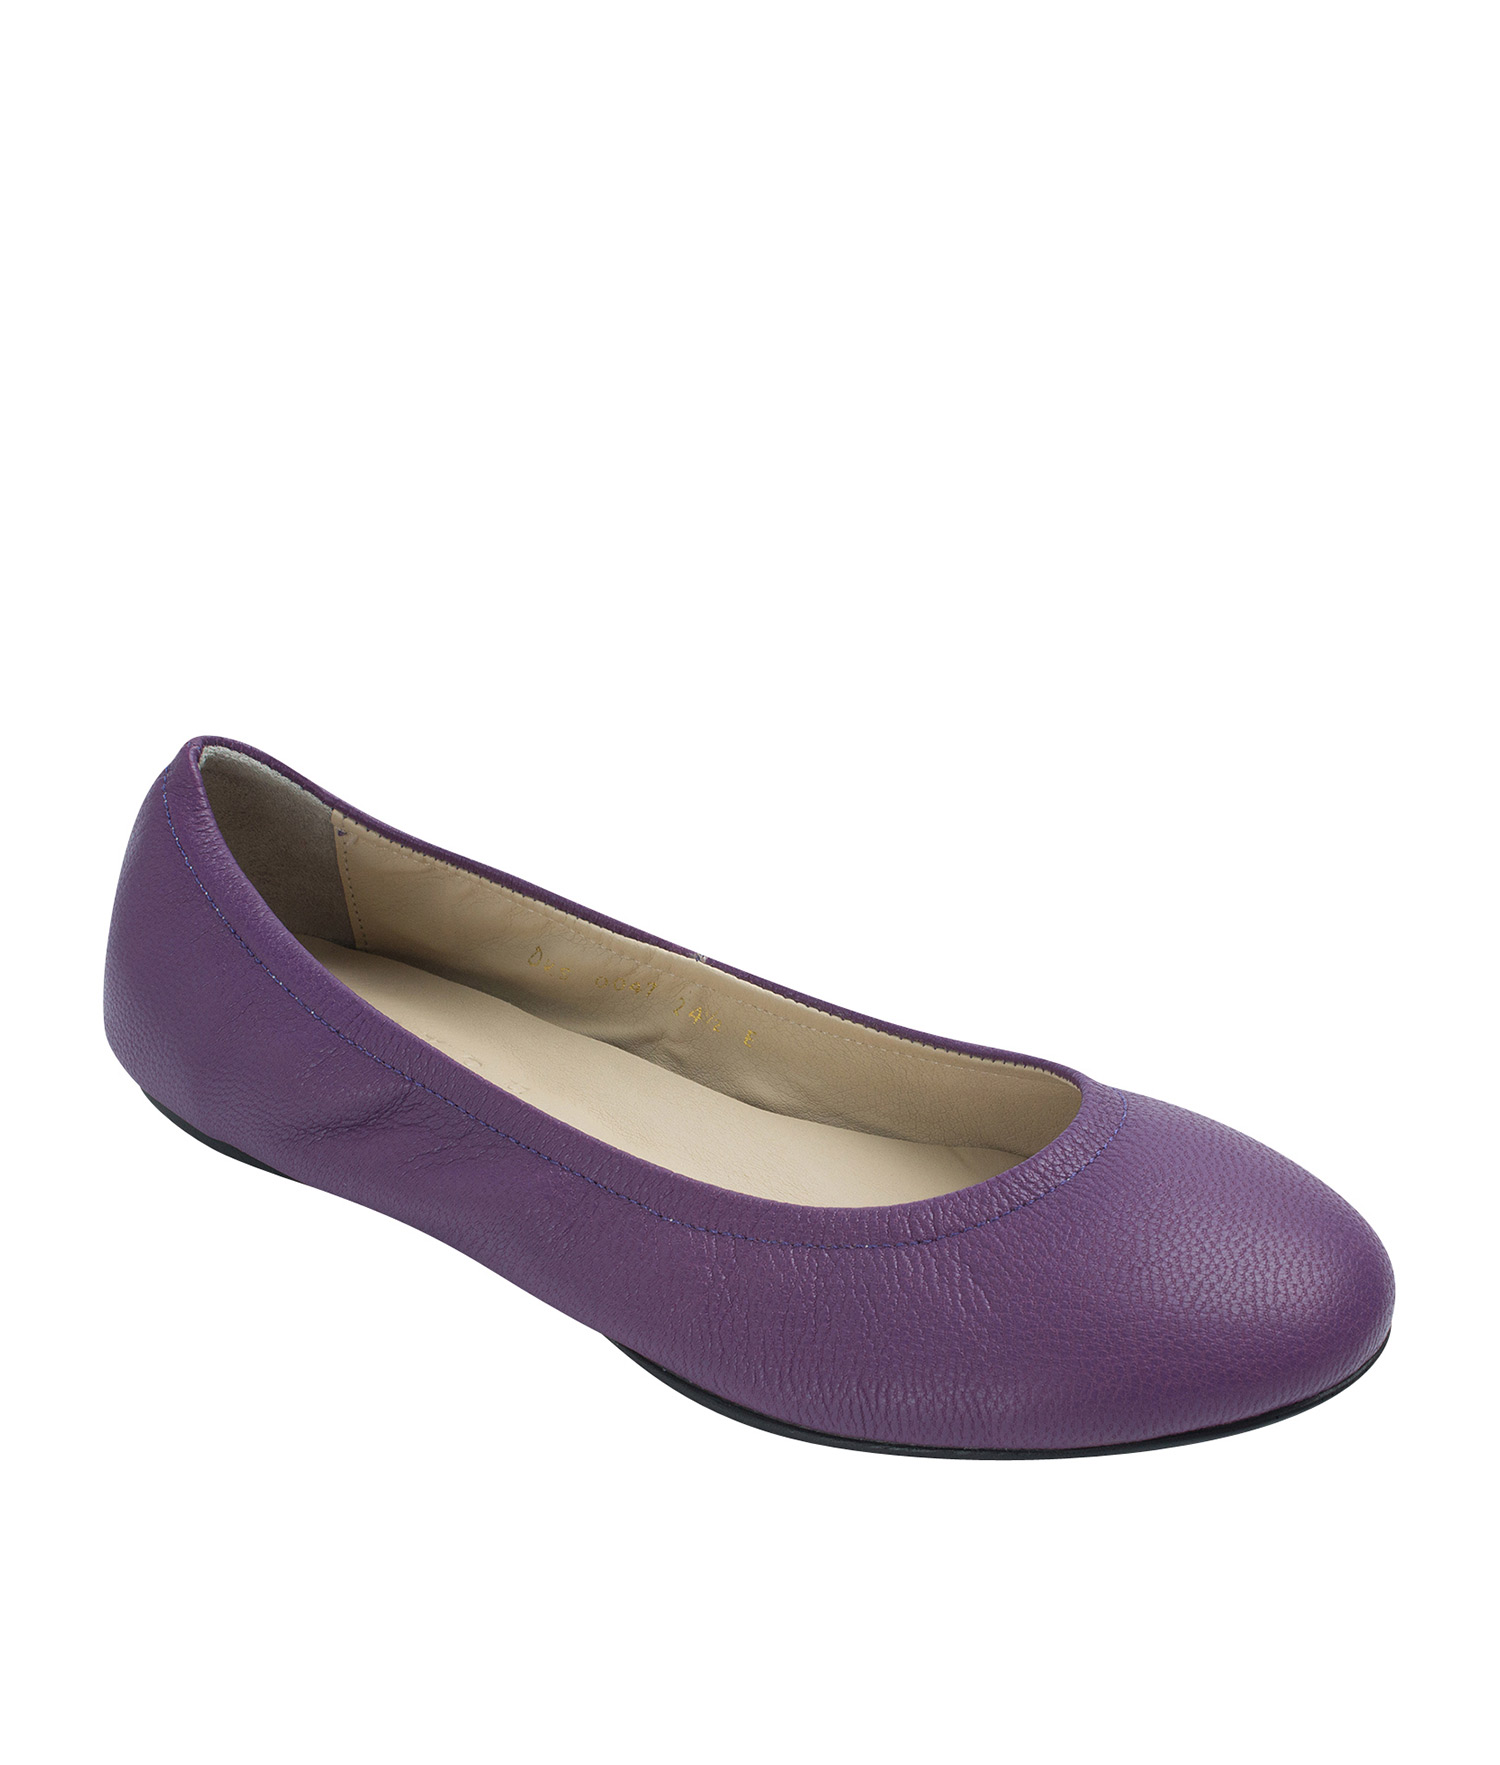 Annakastle Womens Genuine Leather Elastic Ballerina Flats Purple